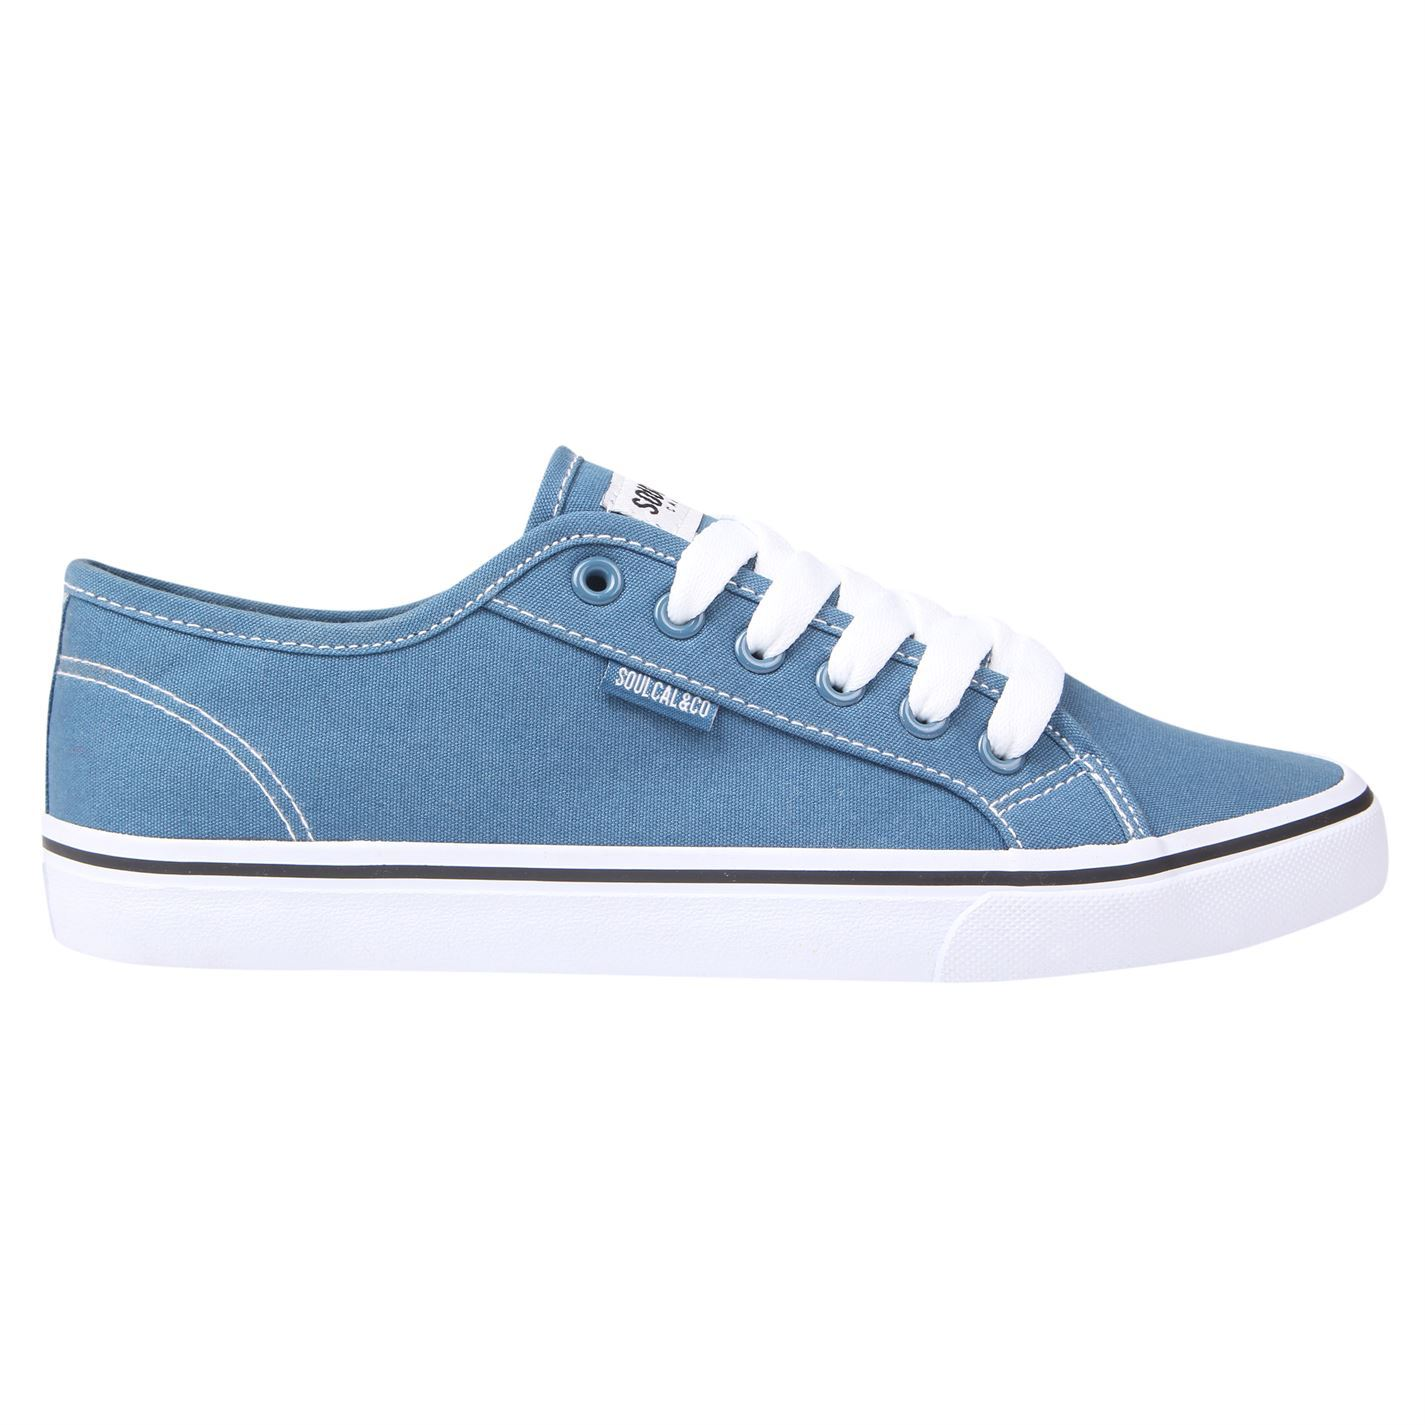 d989002794f1 ... SoulCal Sunrise LC Canvas Shoes Mens Footwear Trainers Sneakers ...